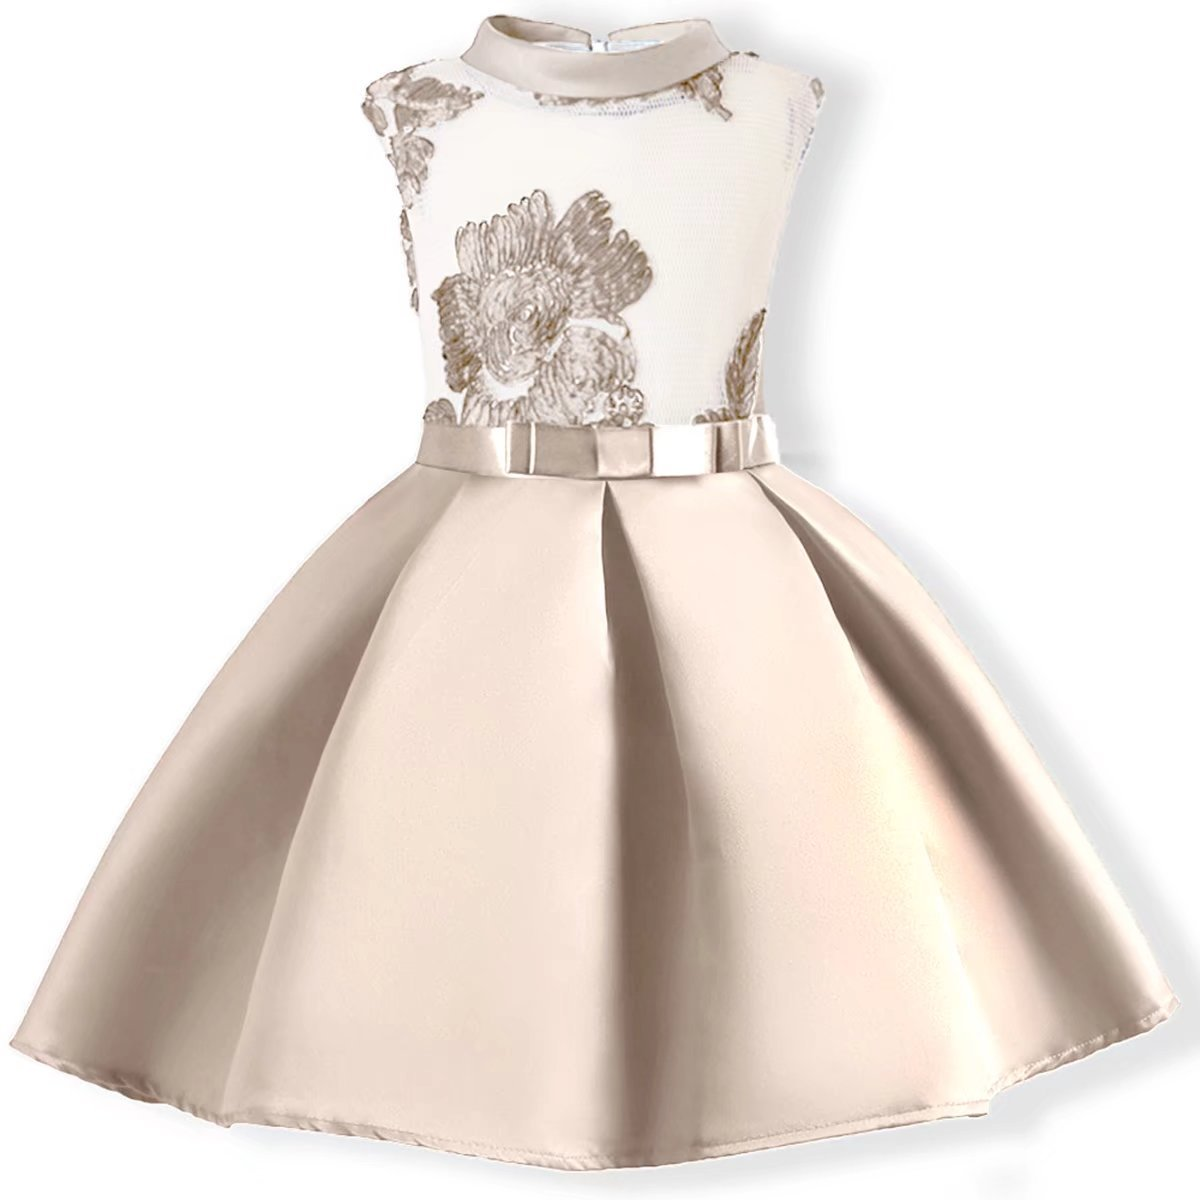 AYOMIS Baby Girl Dress Party Wedding Flower Dresses Sleeve Gowns(Apricot,8-9Y)